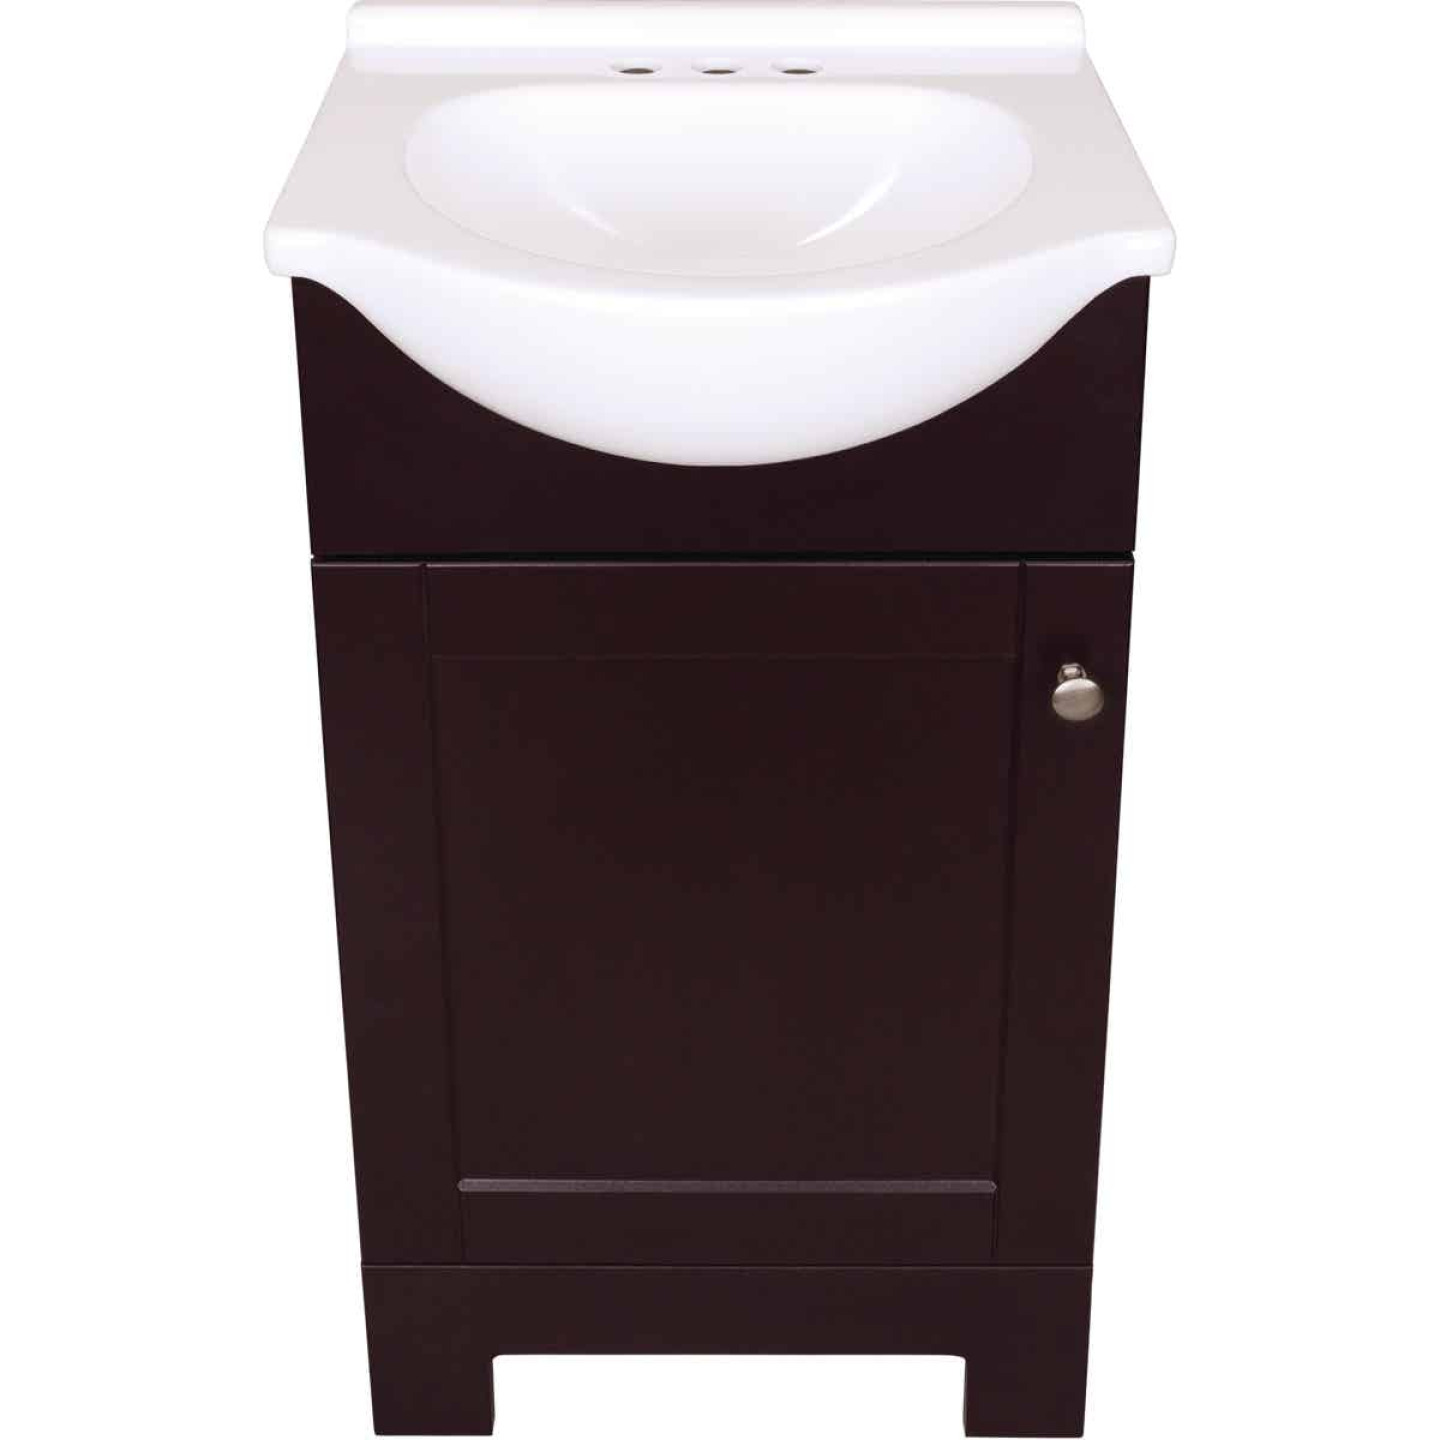 Continental Cabinets European Espresso 18 In. W x 33-1/2 In. H x 12-1/2 In. D Vanity with White Cultured Marble Top Image 2